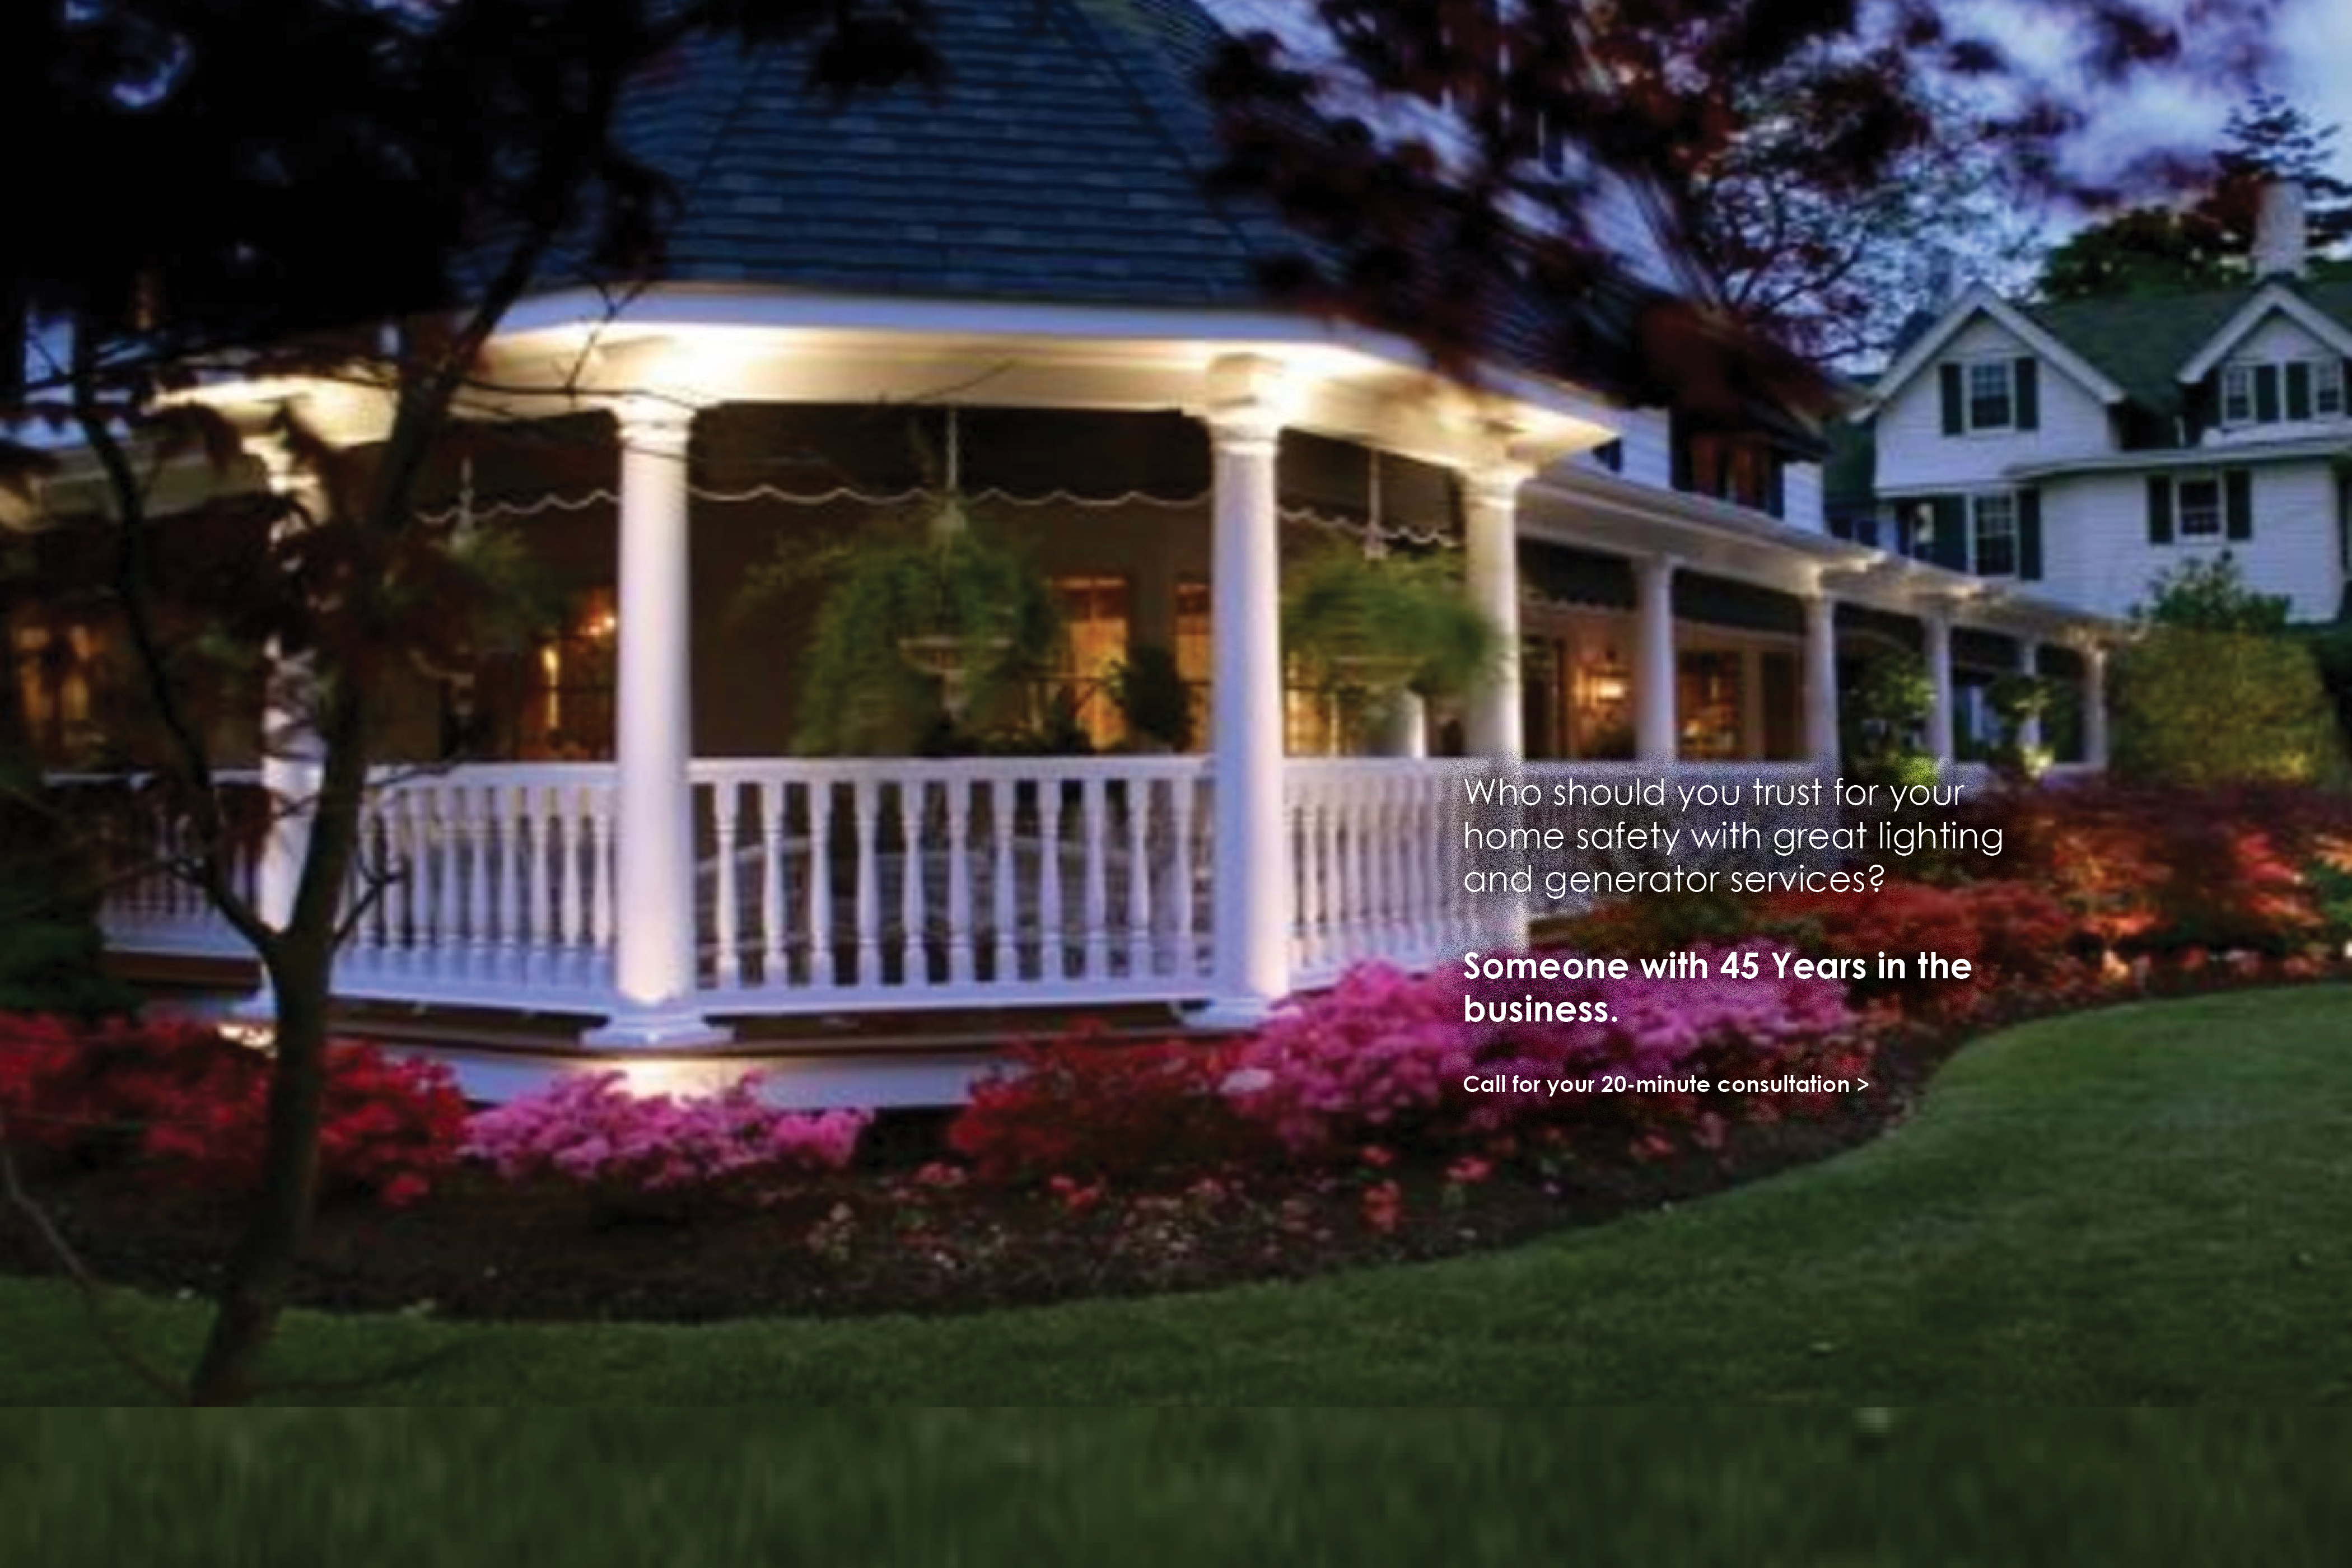 Best lighting designer in Westchester, Design Lighting by Marks, pool lighting, lighting designers, lighting up trees, pool area lighting, fast installation of lighting, one day lighting installers